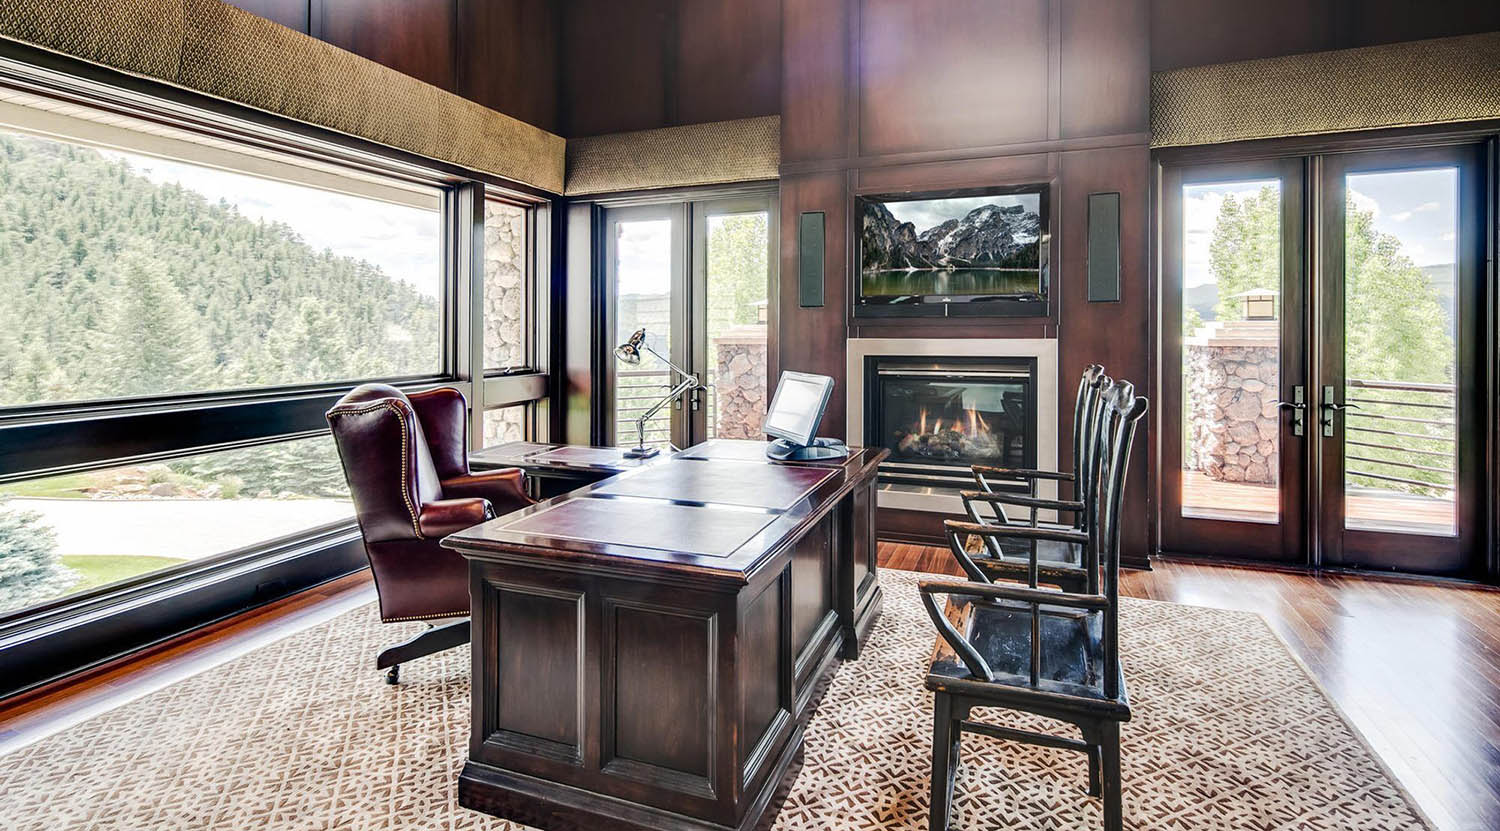 All wood wall paneling stained dark with matching wood desk. Huge windows let in tons of natural light. Built in gas fireplace.